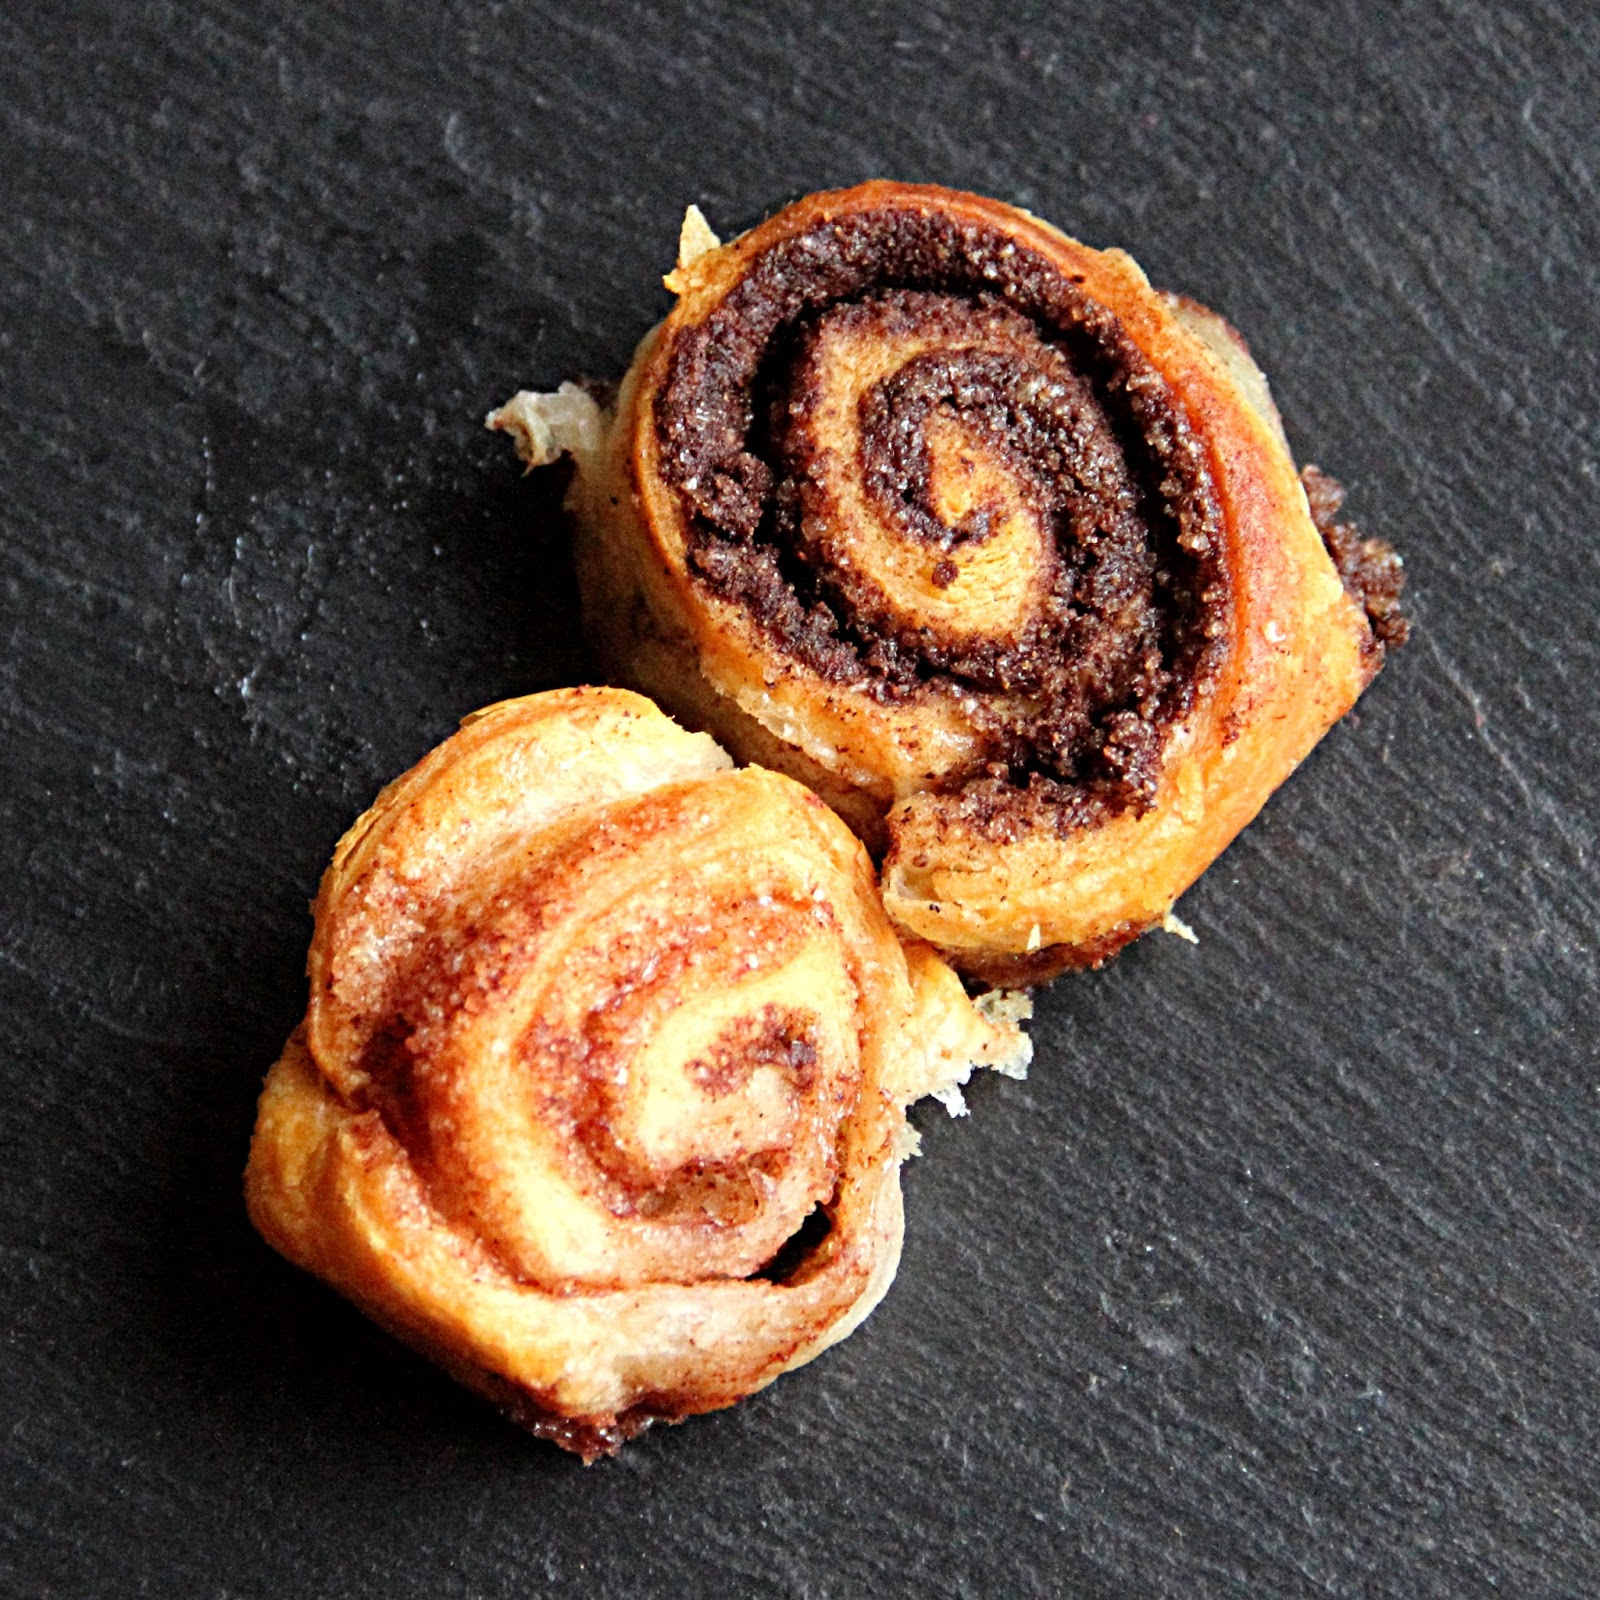 CookingWithGifs: Cinnamon Test, With Buns